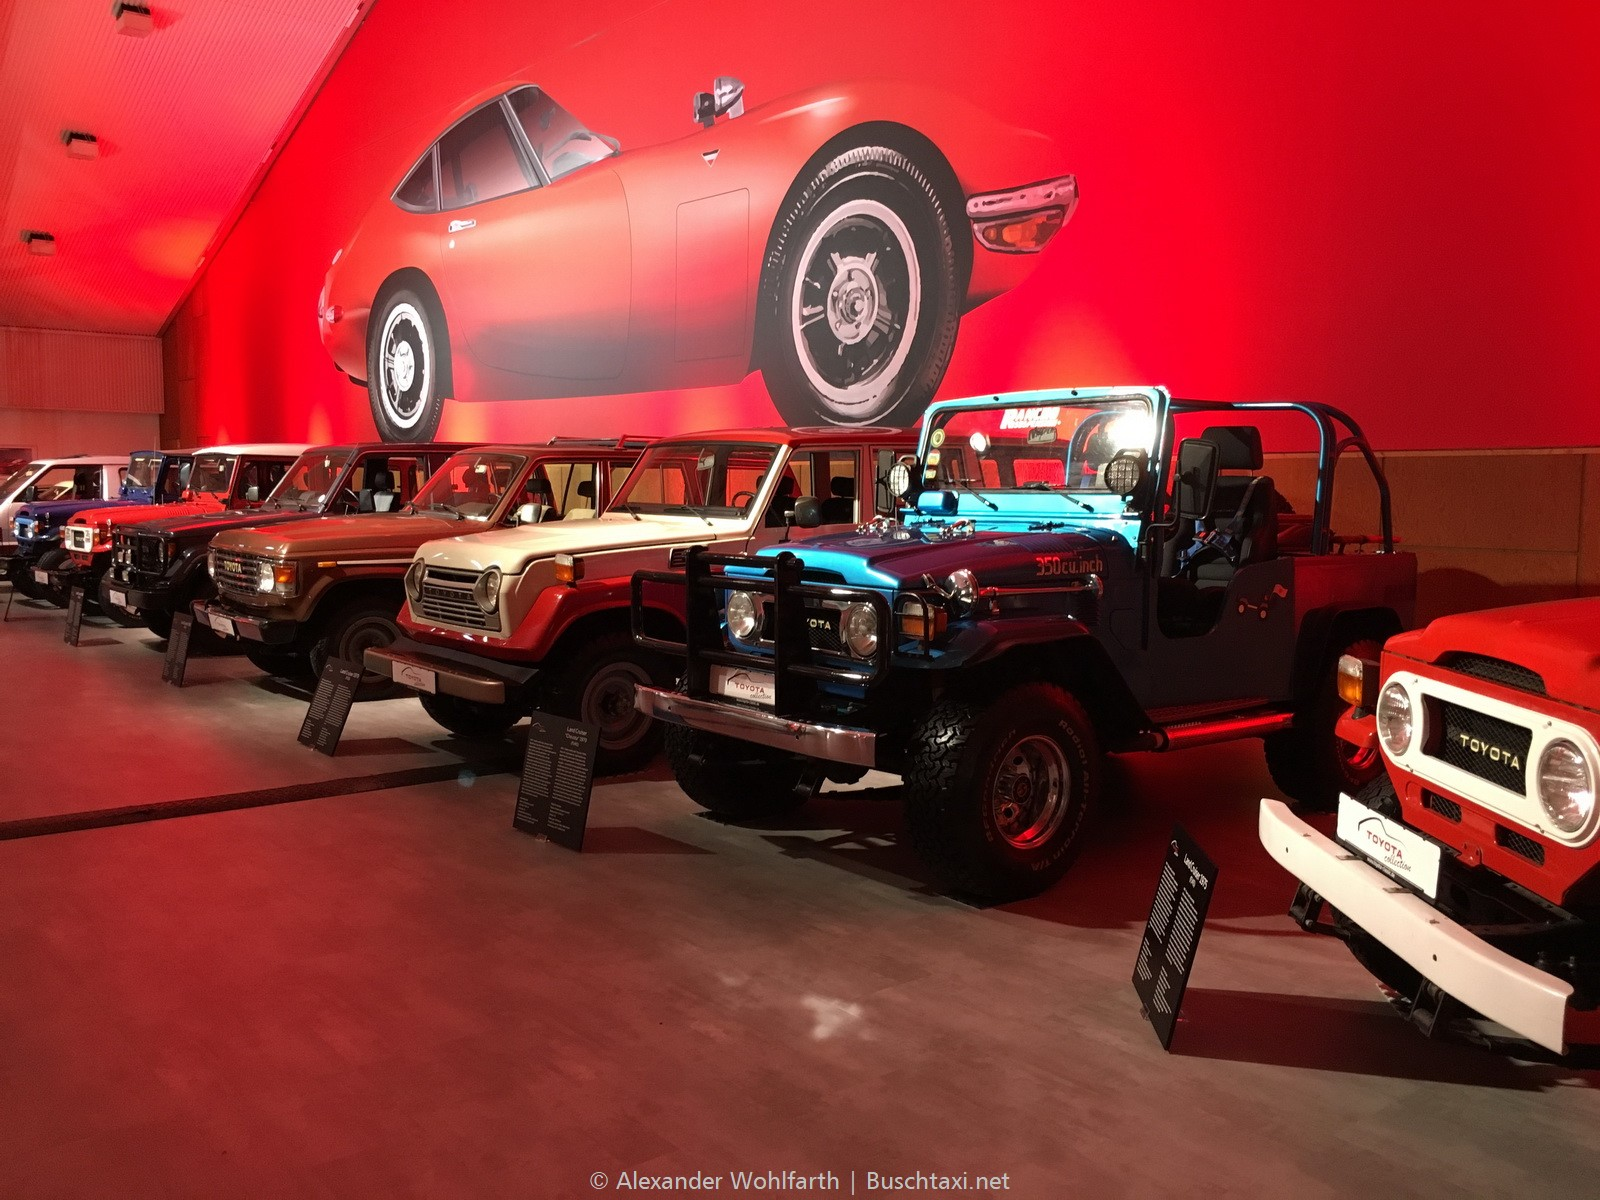 2017-11-23 toyota collection 09